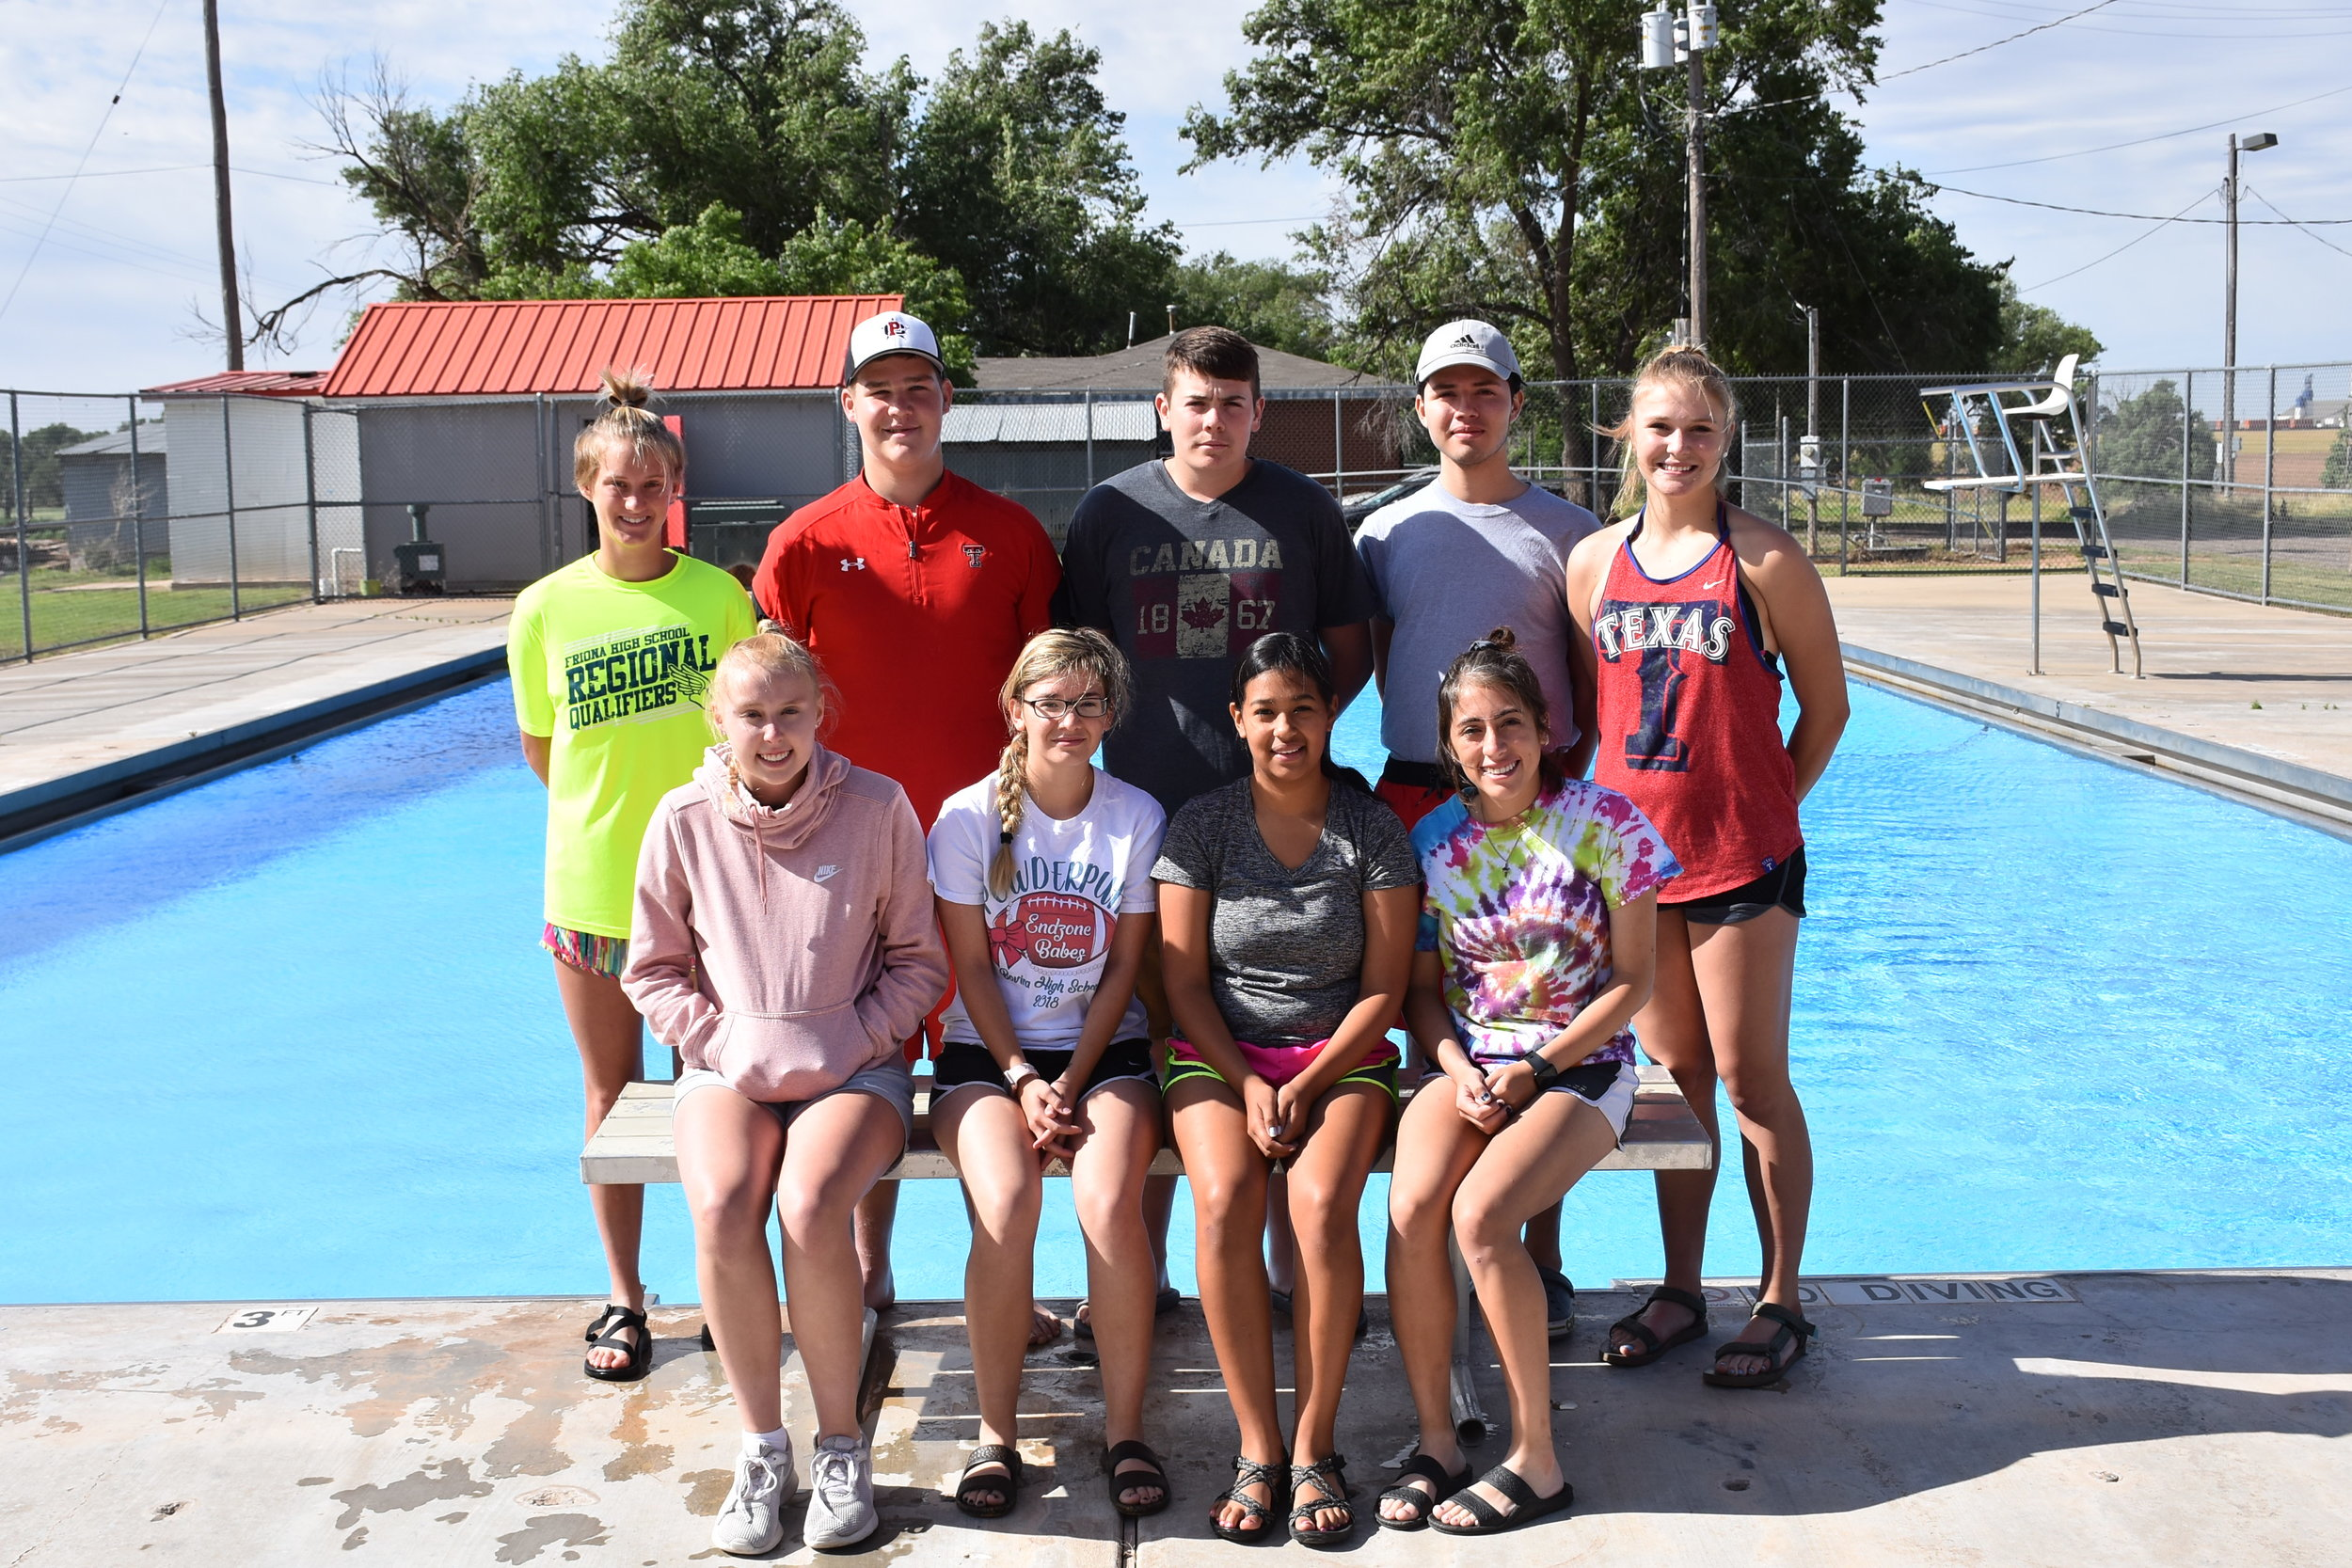 Front Row : Kambree Kimbrough, MaKenze Bonham, Gabbie Medrano, and Pool Manager Rickie Castillo   Back Row : Jodie Denton, Andrew Husted, Anthony Abarca, Pool Assistant Manager Angel Mills, and Carly Drake